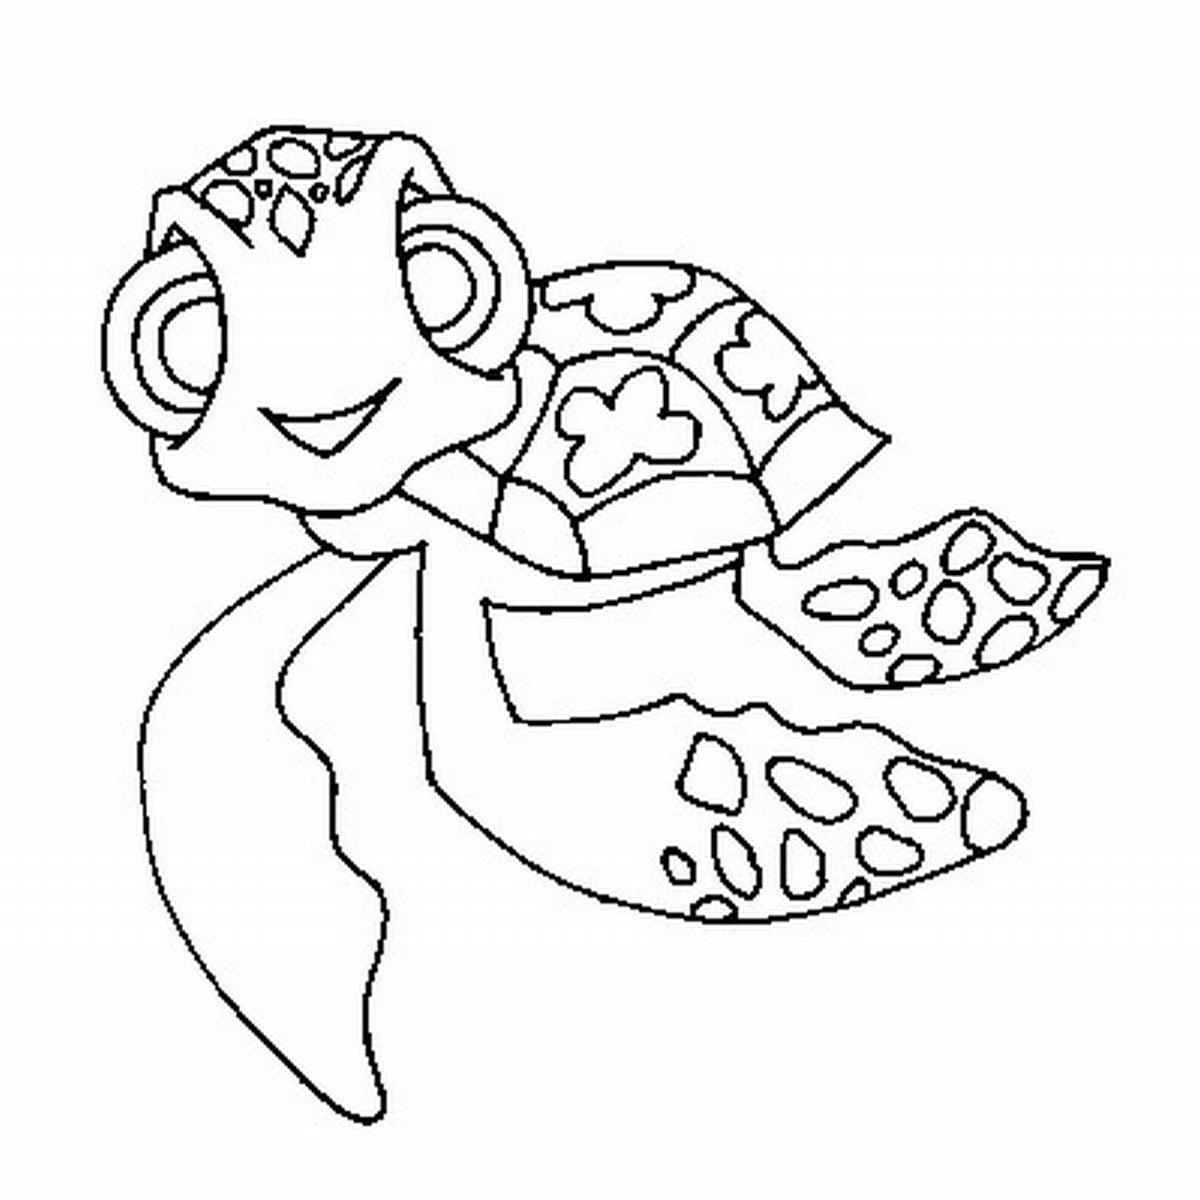 1200x1200 Drawn Turtle Coloring Page